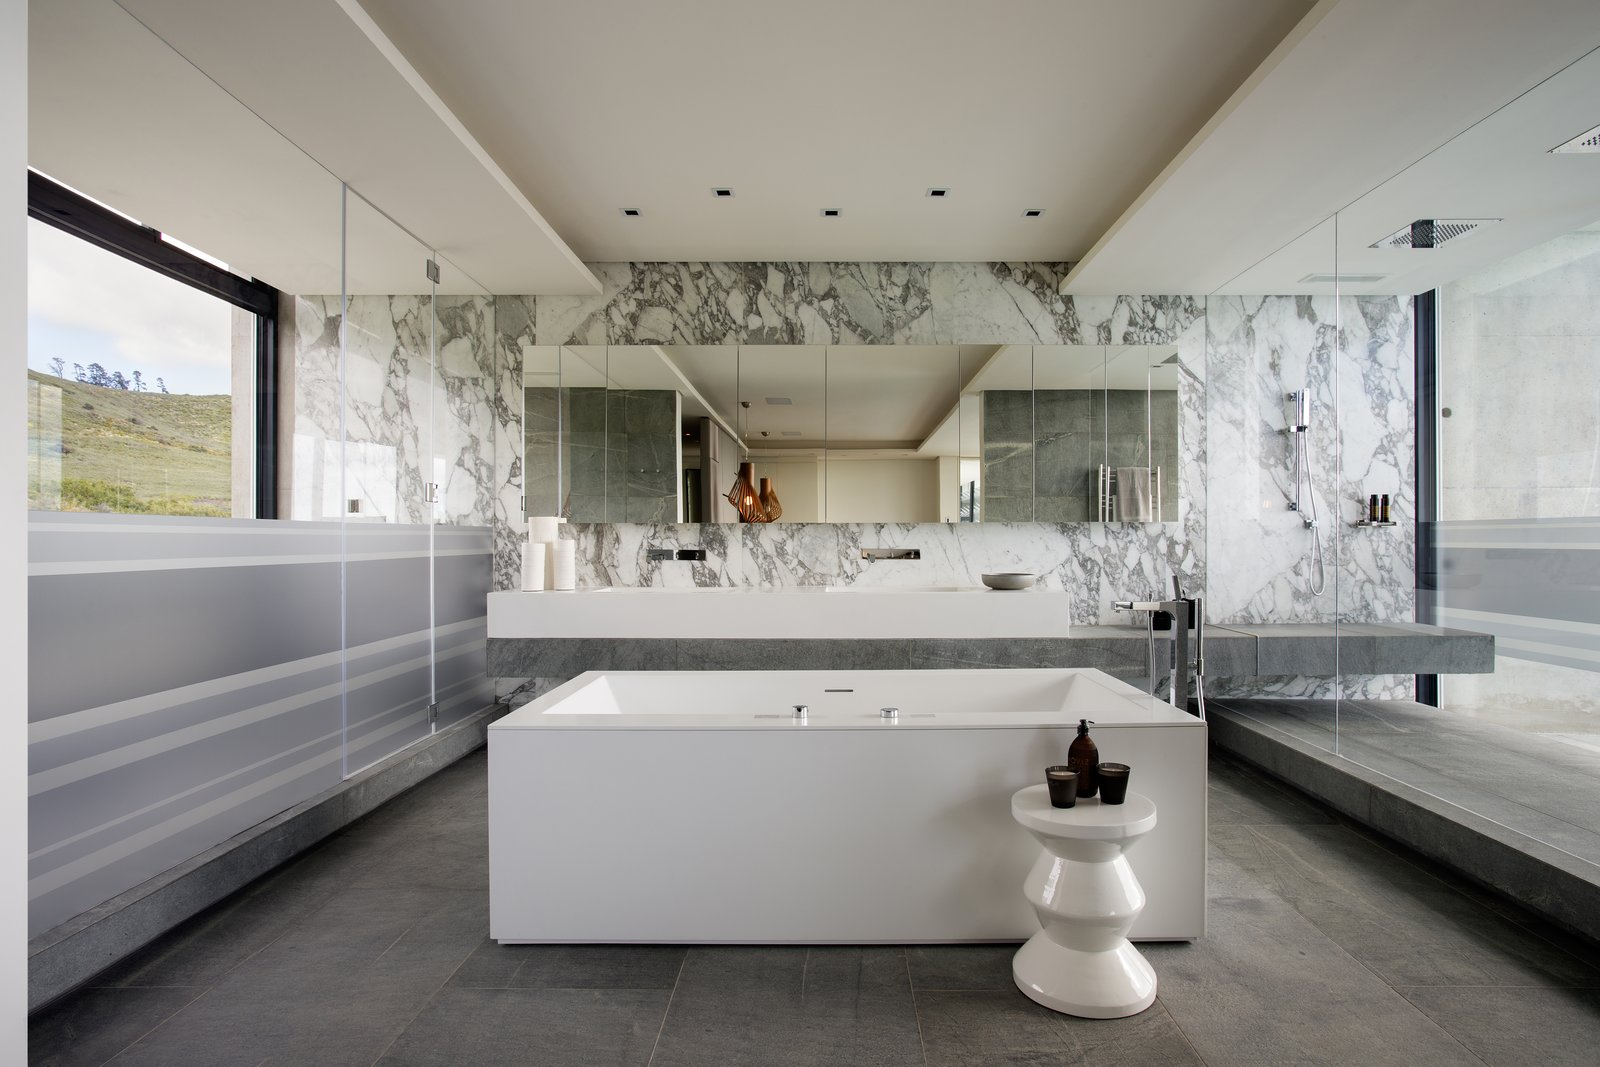 Bath Room, Freestanding Tub, Undermount Sink, Full Shower, Corner Shower, Ceramic Tile Floor, Marble Wall, Granite Counter, Marble Counter, Concrete Counter, and Recessed Lighting  Photo 1 of 5 in Top 5 Homes of the Week With Blissful Bathrooms from City Villa